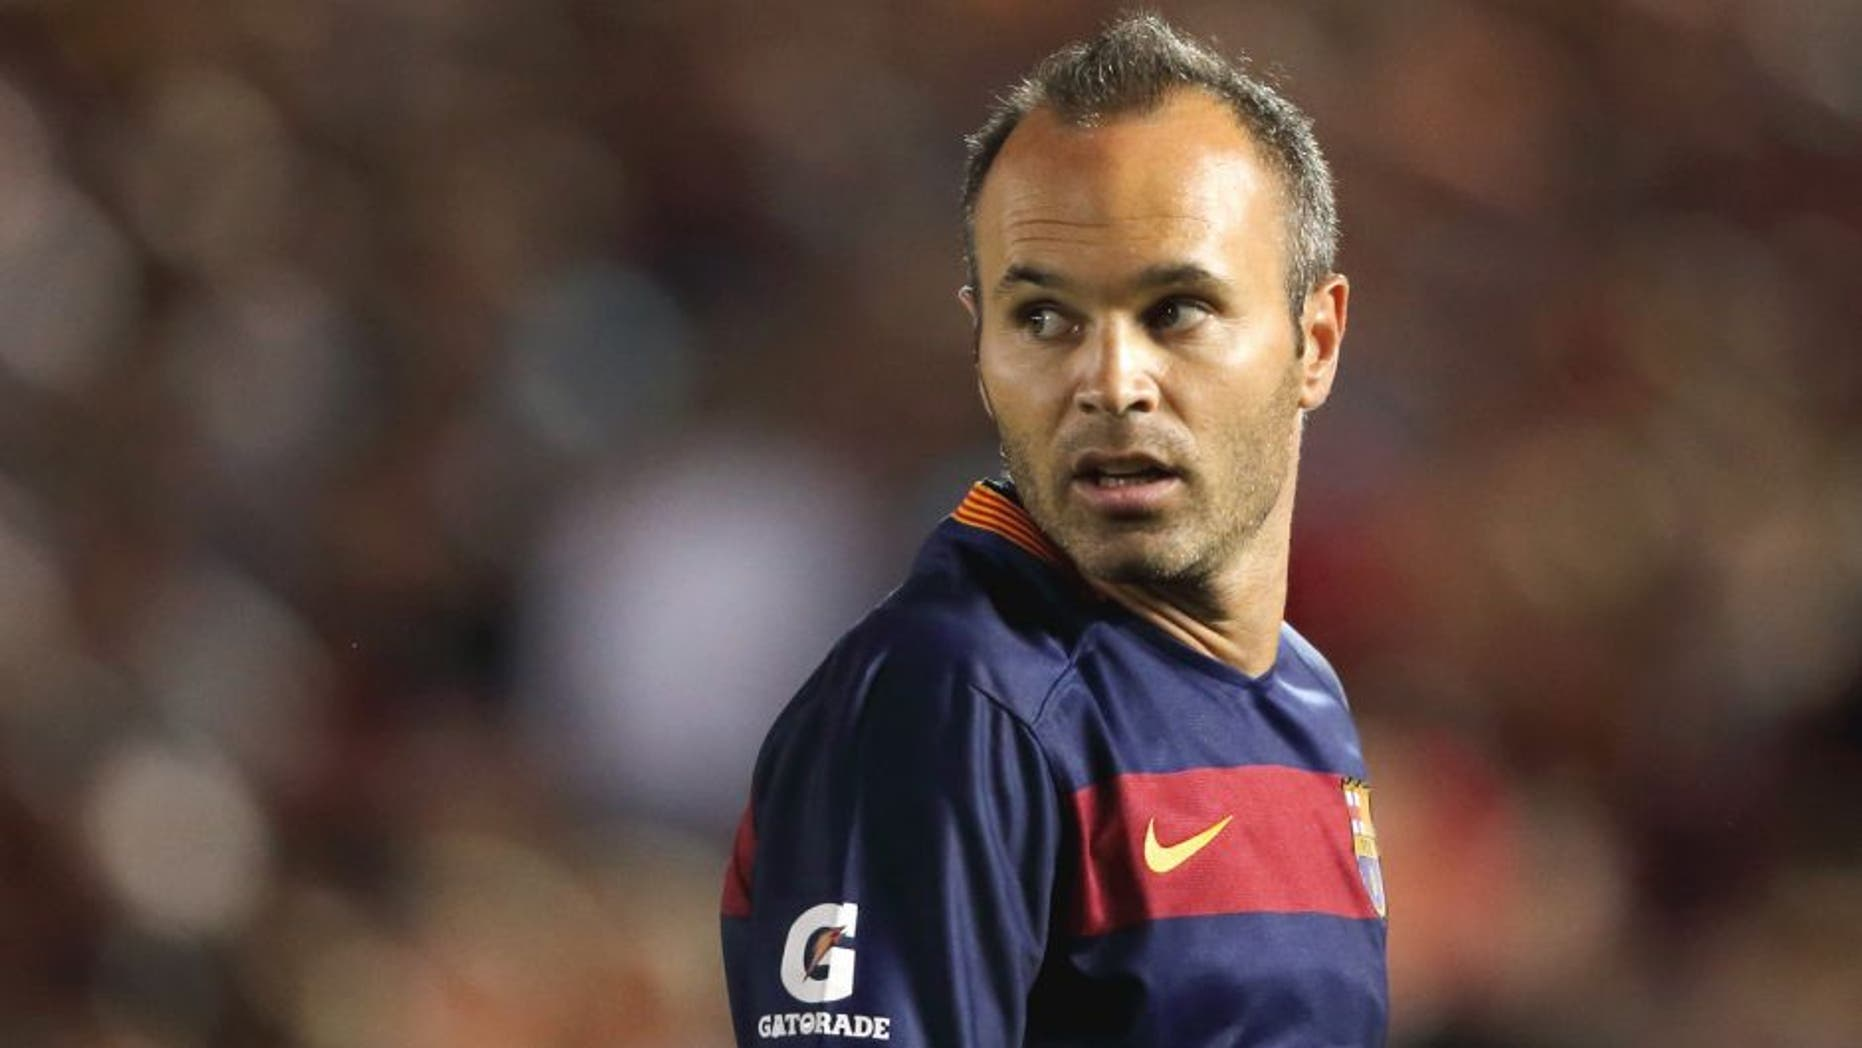 PASADENA, UNITED STATES - JULY 21: Andres Iniesta of FC Barcelona during the International Champions Cup 2015 match between FC Barcelona and Los Angeles Galaxy at Rose Bowl on July 21, 2015 in Pasadena, California. (Photo by Matthew Ashton - AMA/Getty Images)